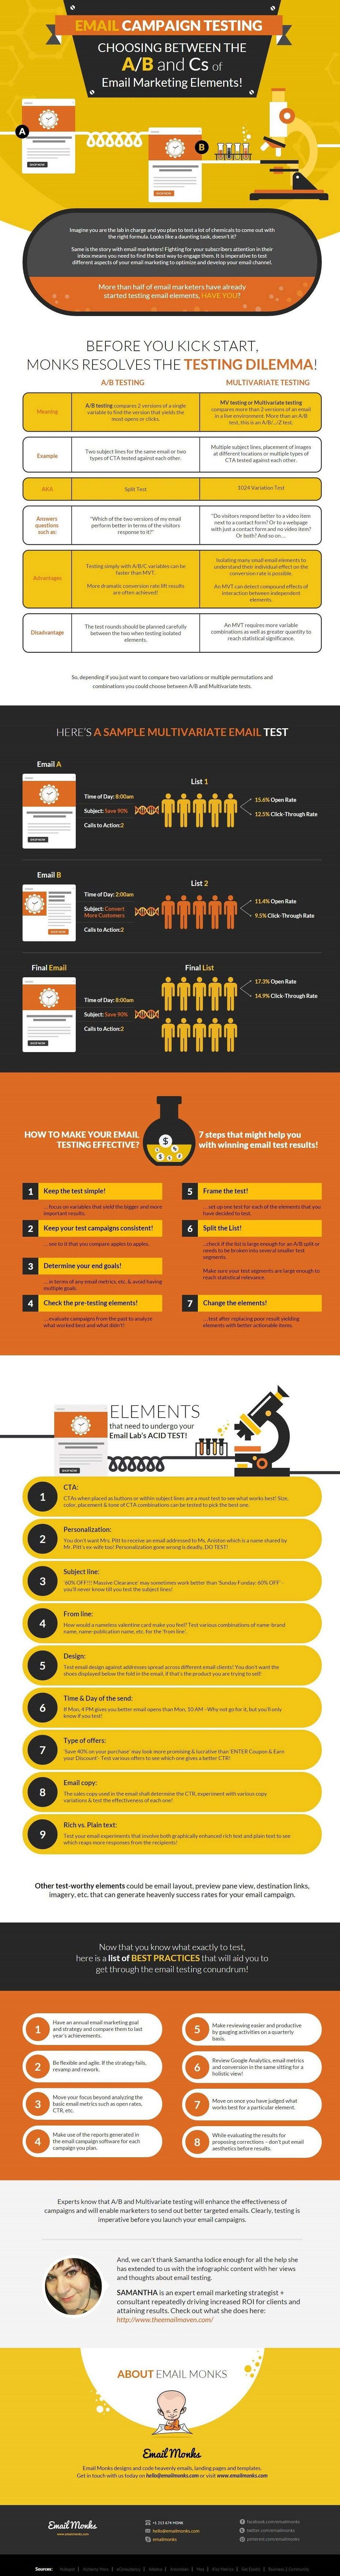 email marketing testing infographic